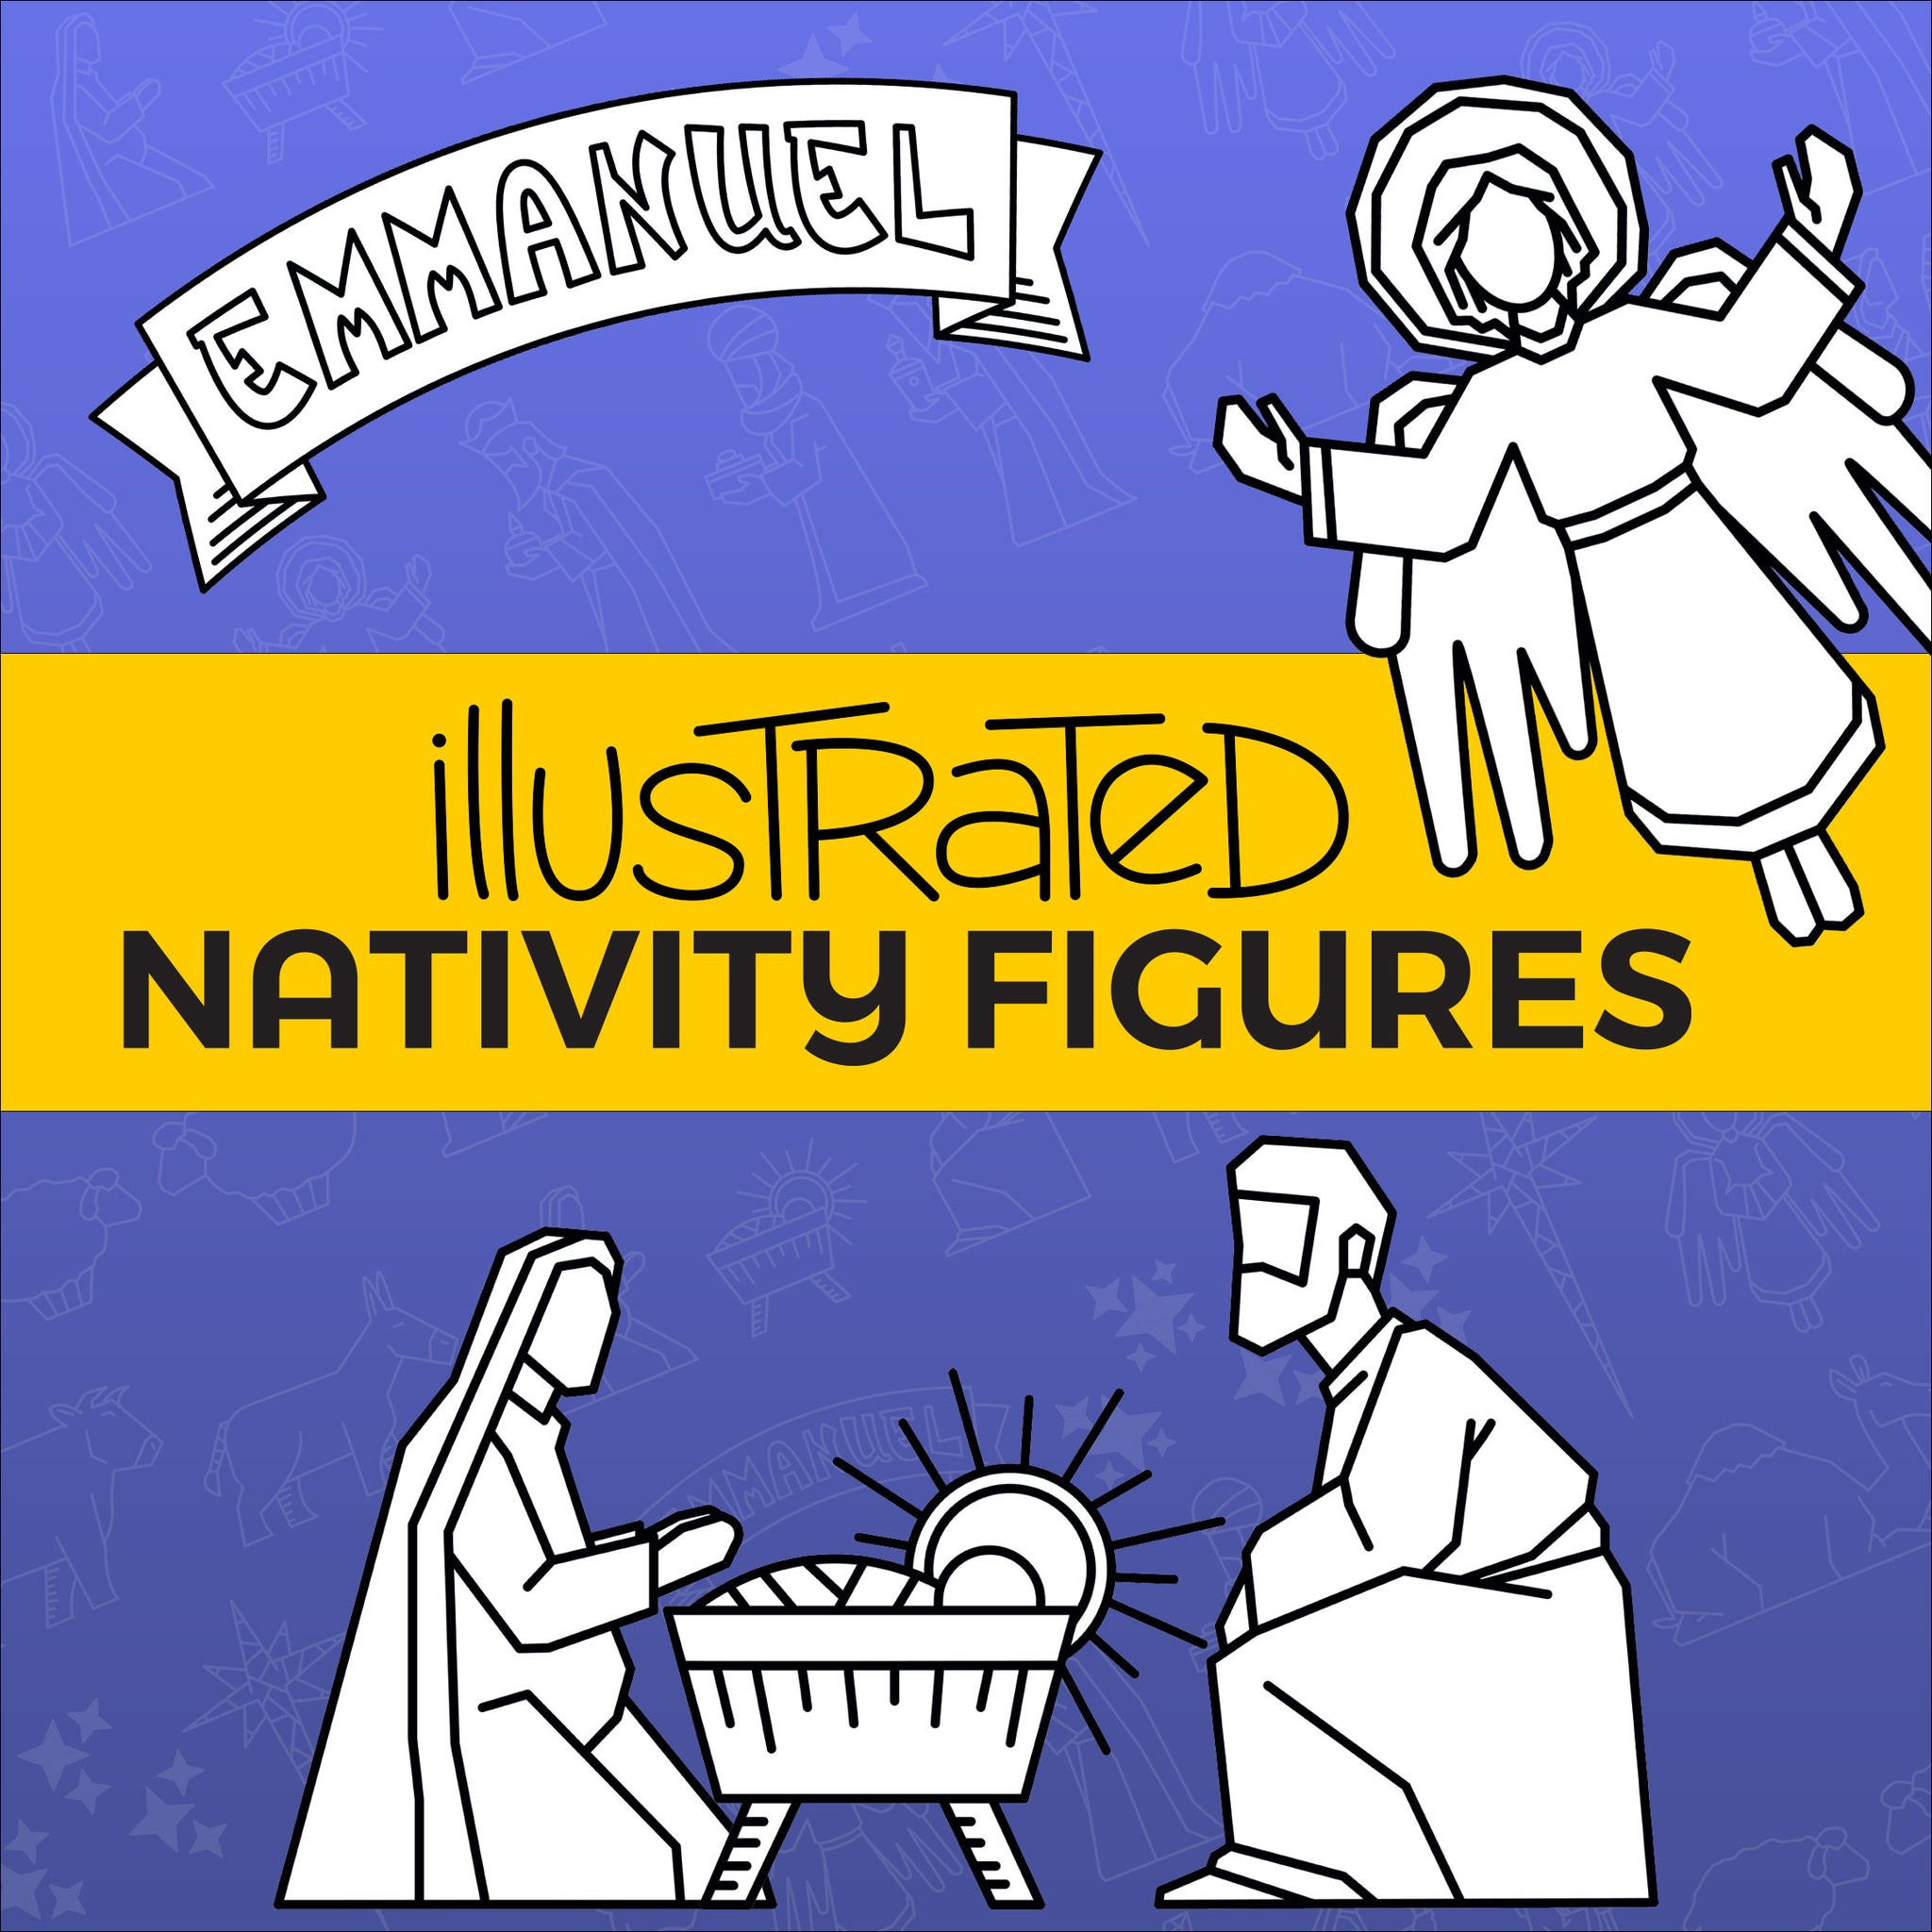 Illustrated Nativity Figures